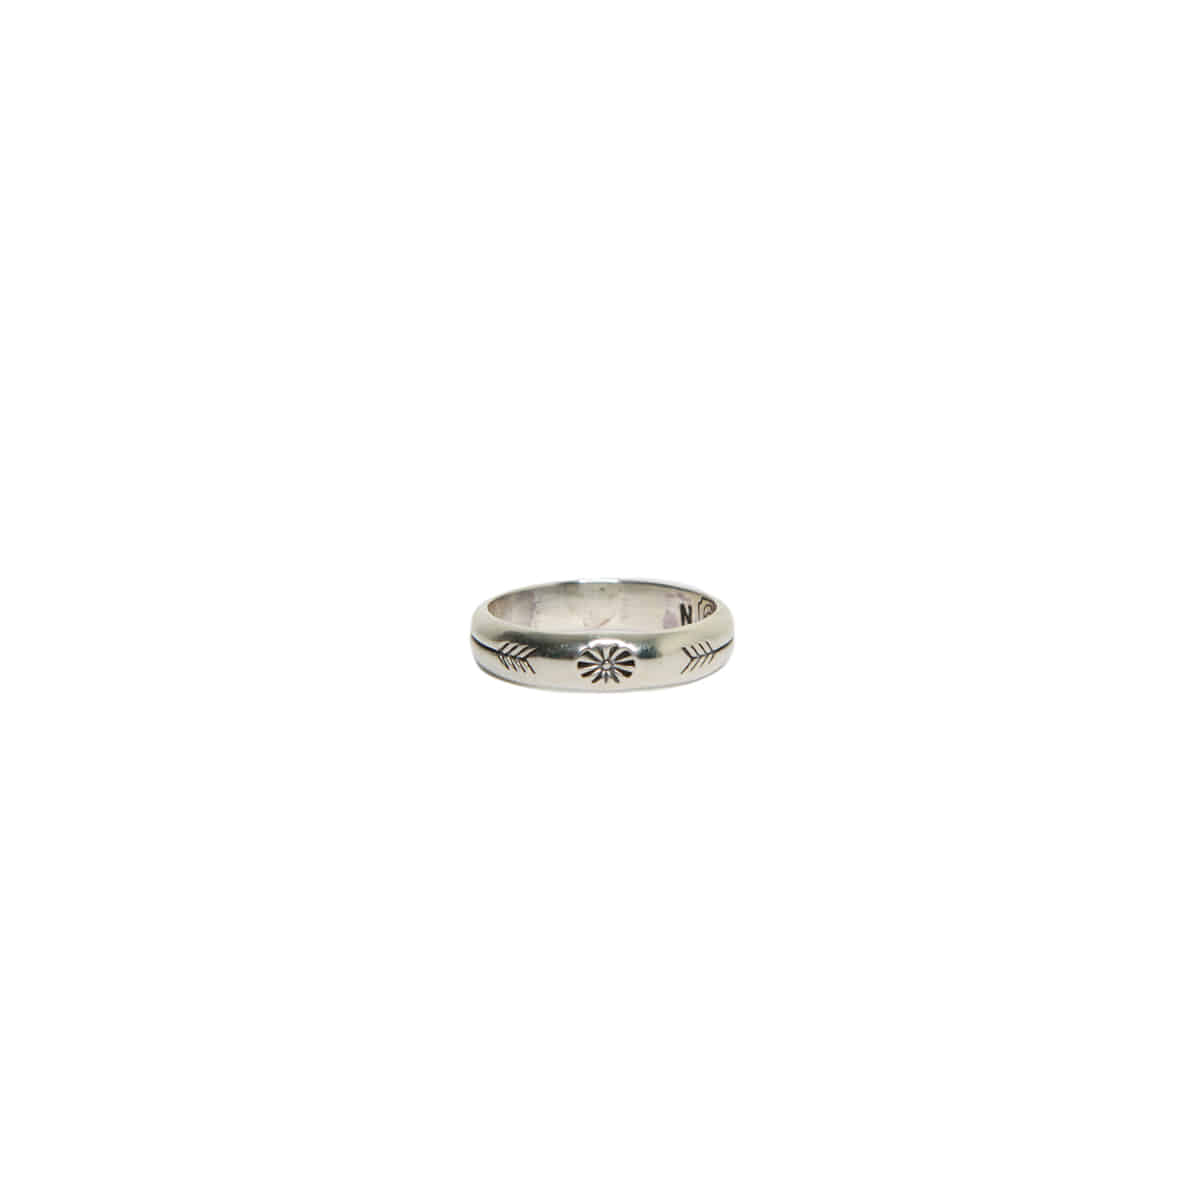 [NORTH WORKS] 900 SILVER STAMP RING 'W-024'